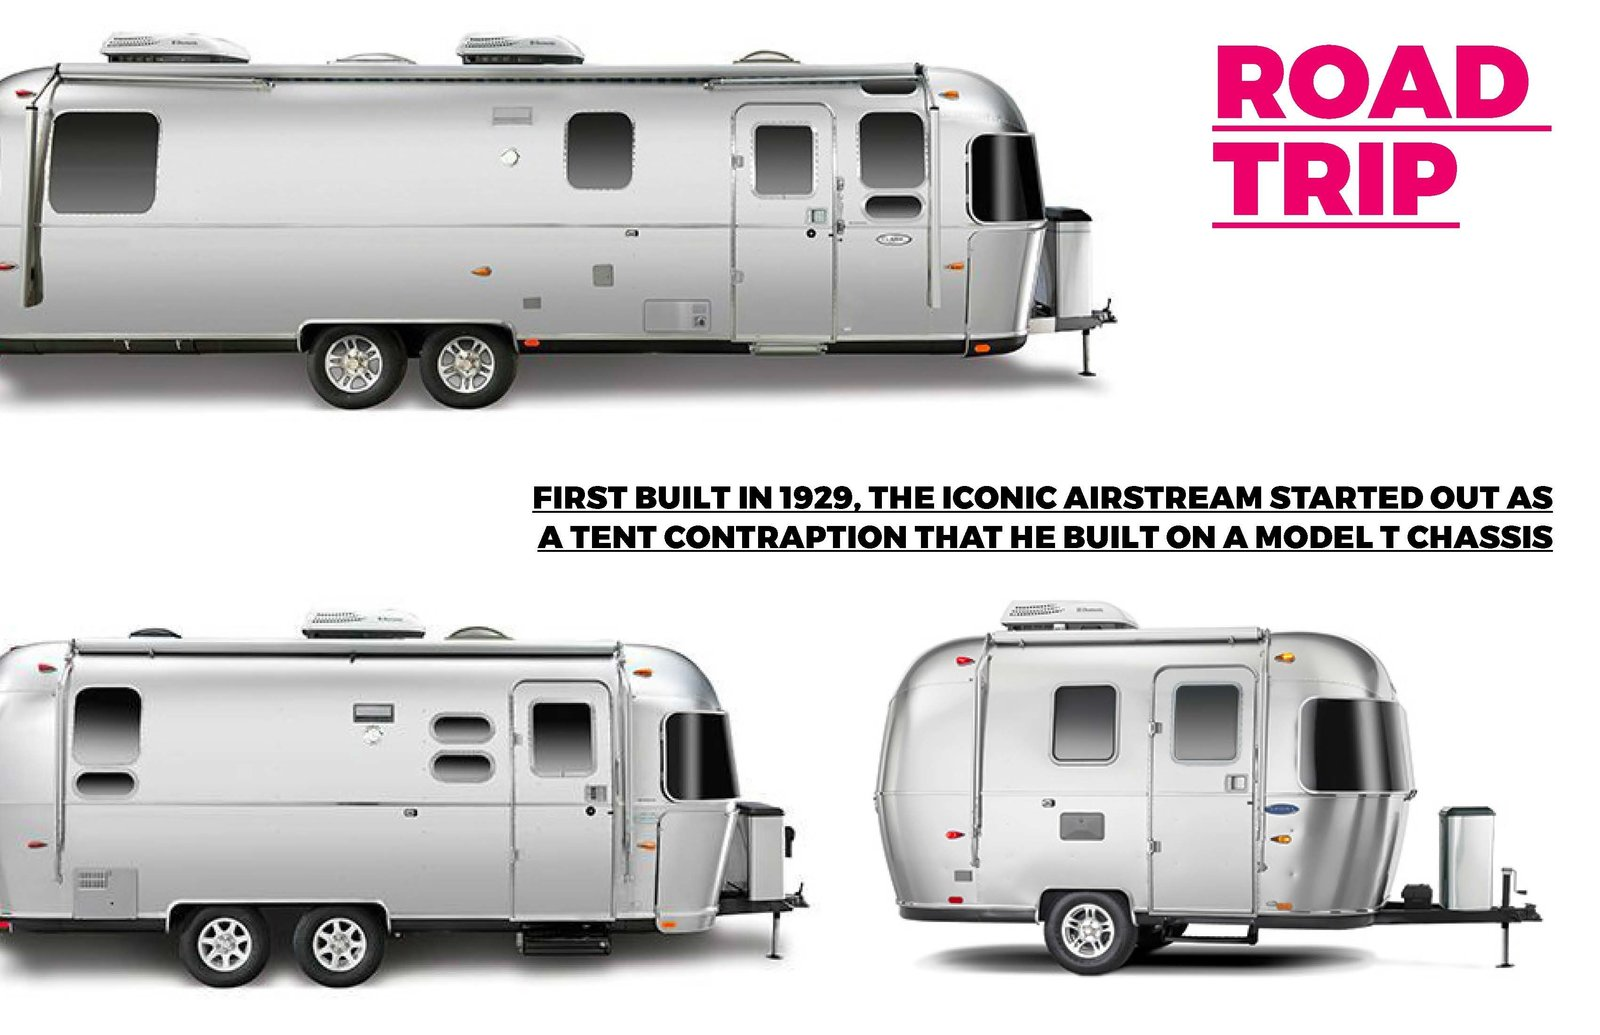 Photo's courtesy of Airstream An amazing company based in Jackson Center, Ohio. The founder of the company Wally Byam designed the first Airstream in 1929 and they still evoke stylings of the original design  Photo 3 of 7 in Road Trip